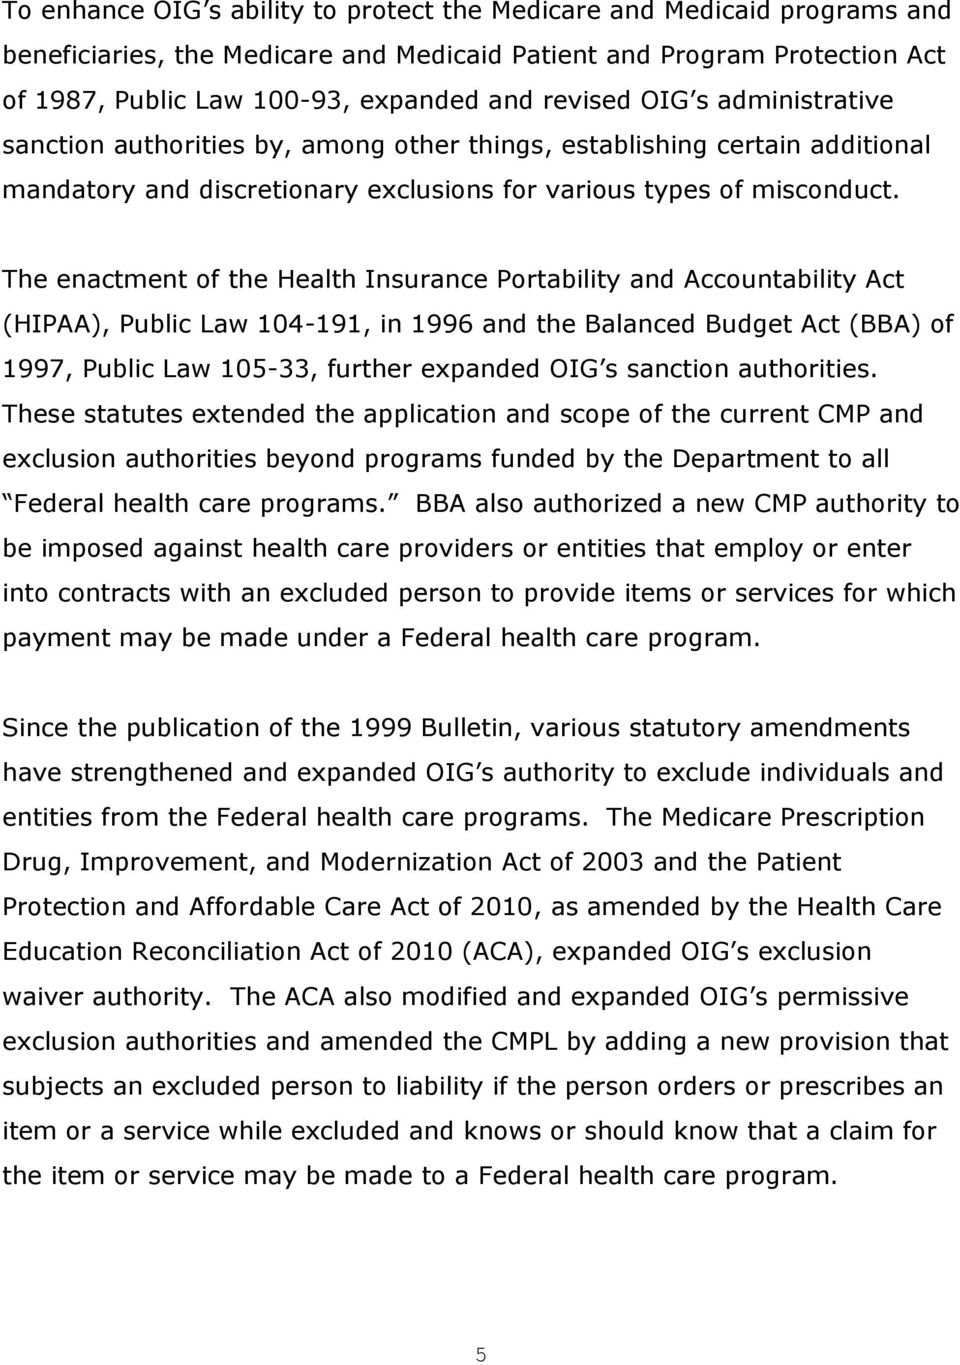 The enactment of the Health Insurance Portability and Accountability Act (HIPAA), Public Law 104-191, in 1996 and the Balanced Budget Act (BBA) of 1997, Public Law 105-33, further expanded OIG s